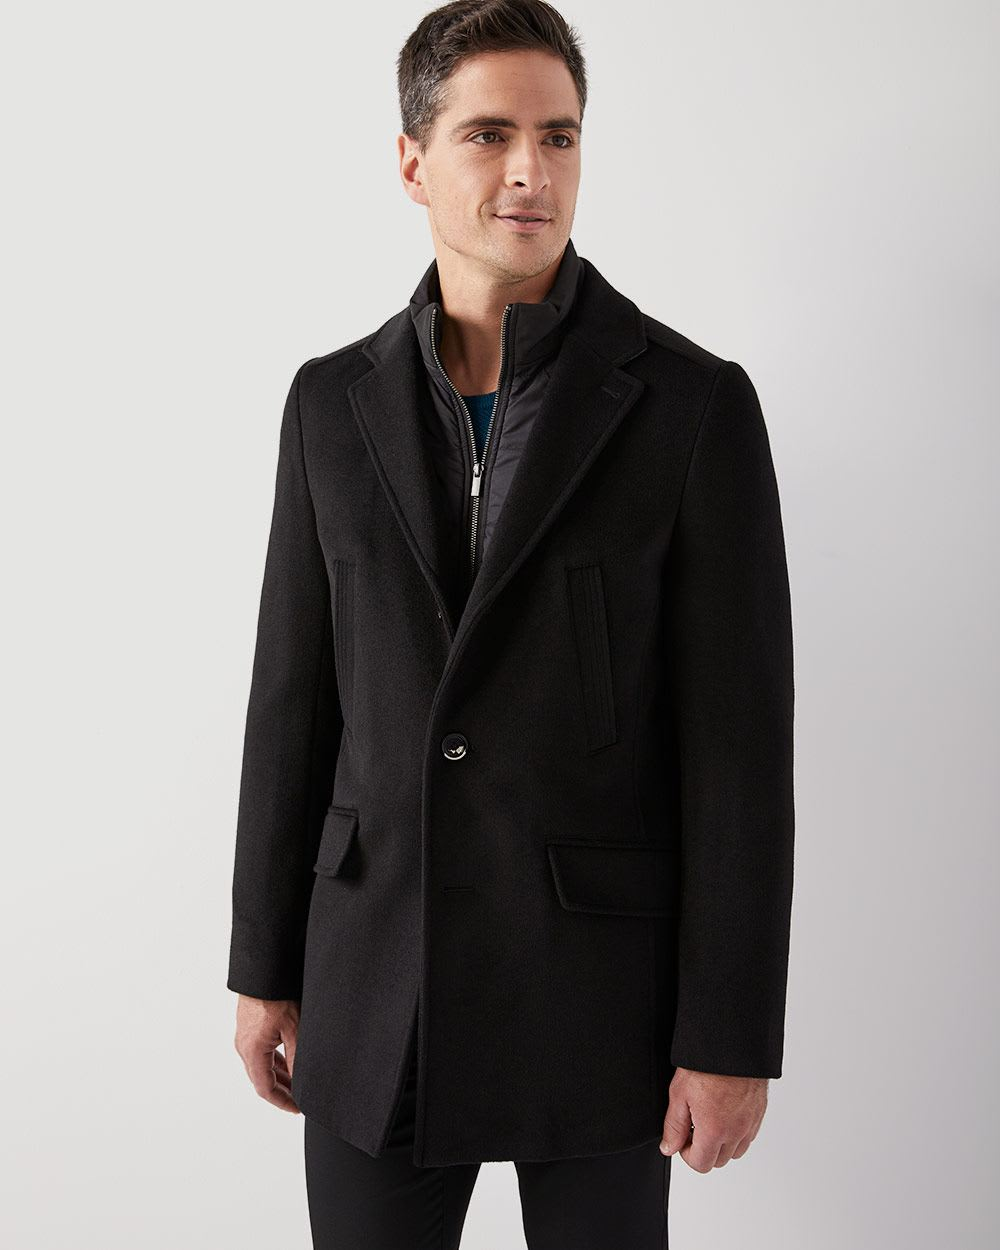 Looks - How to peacoat a wear video